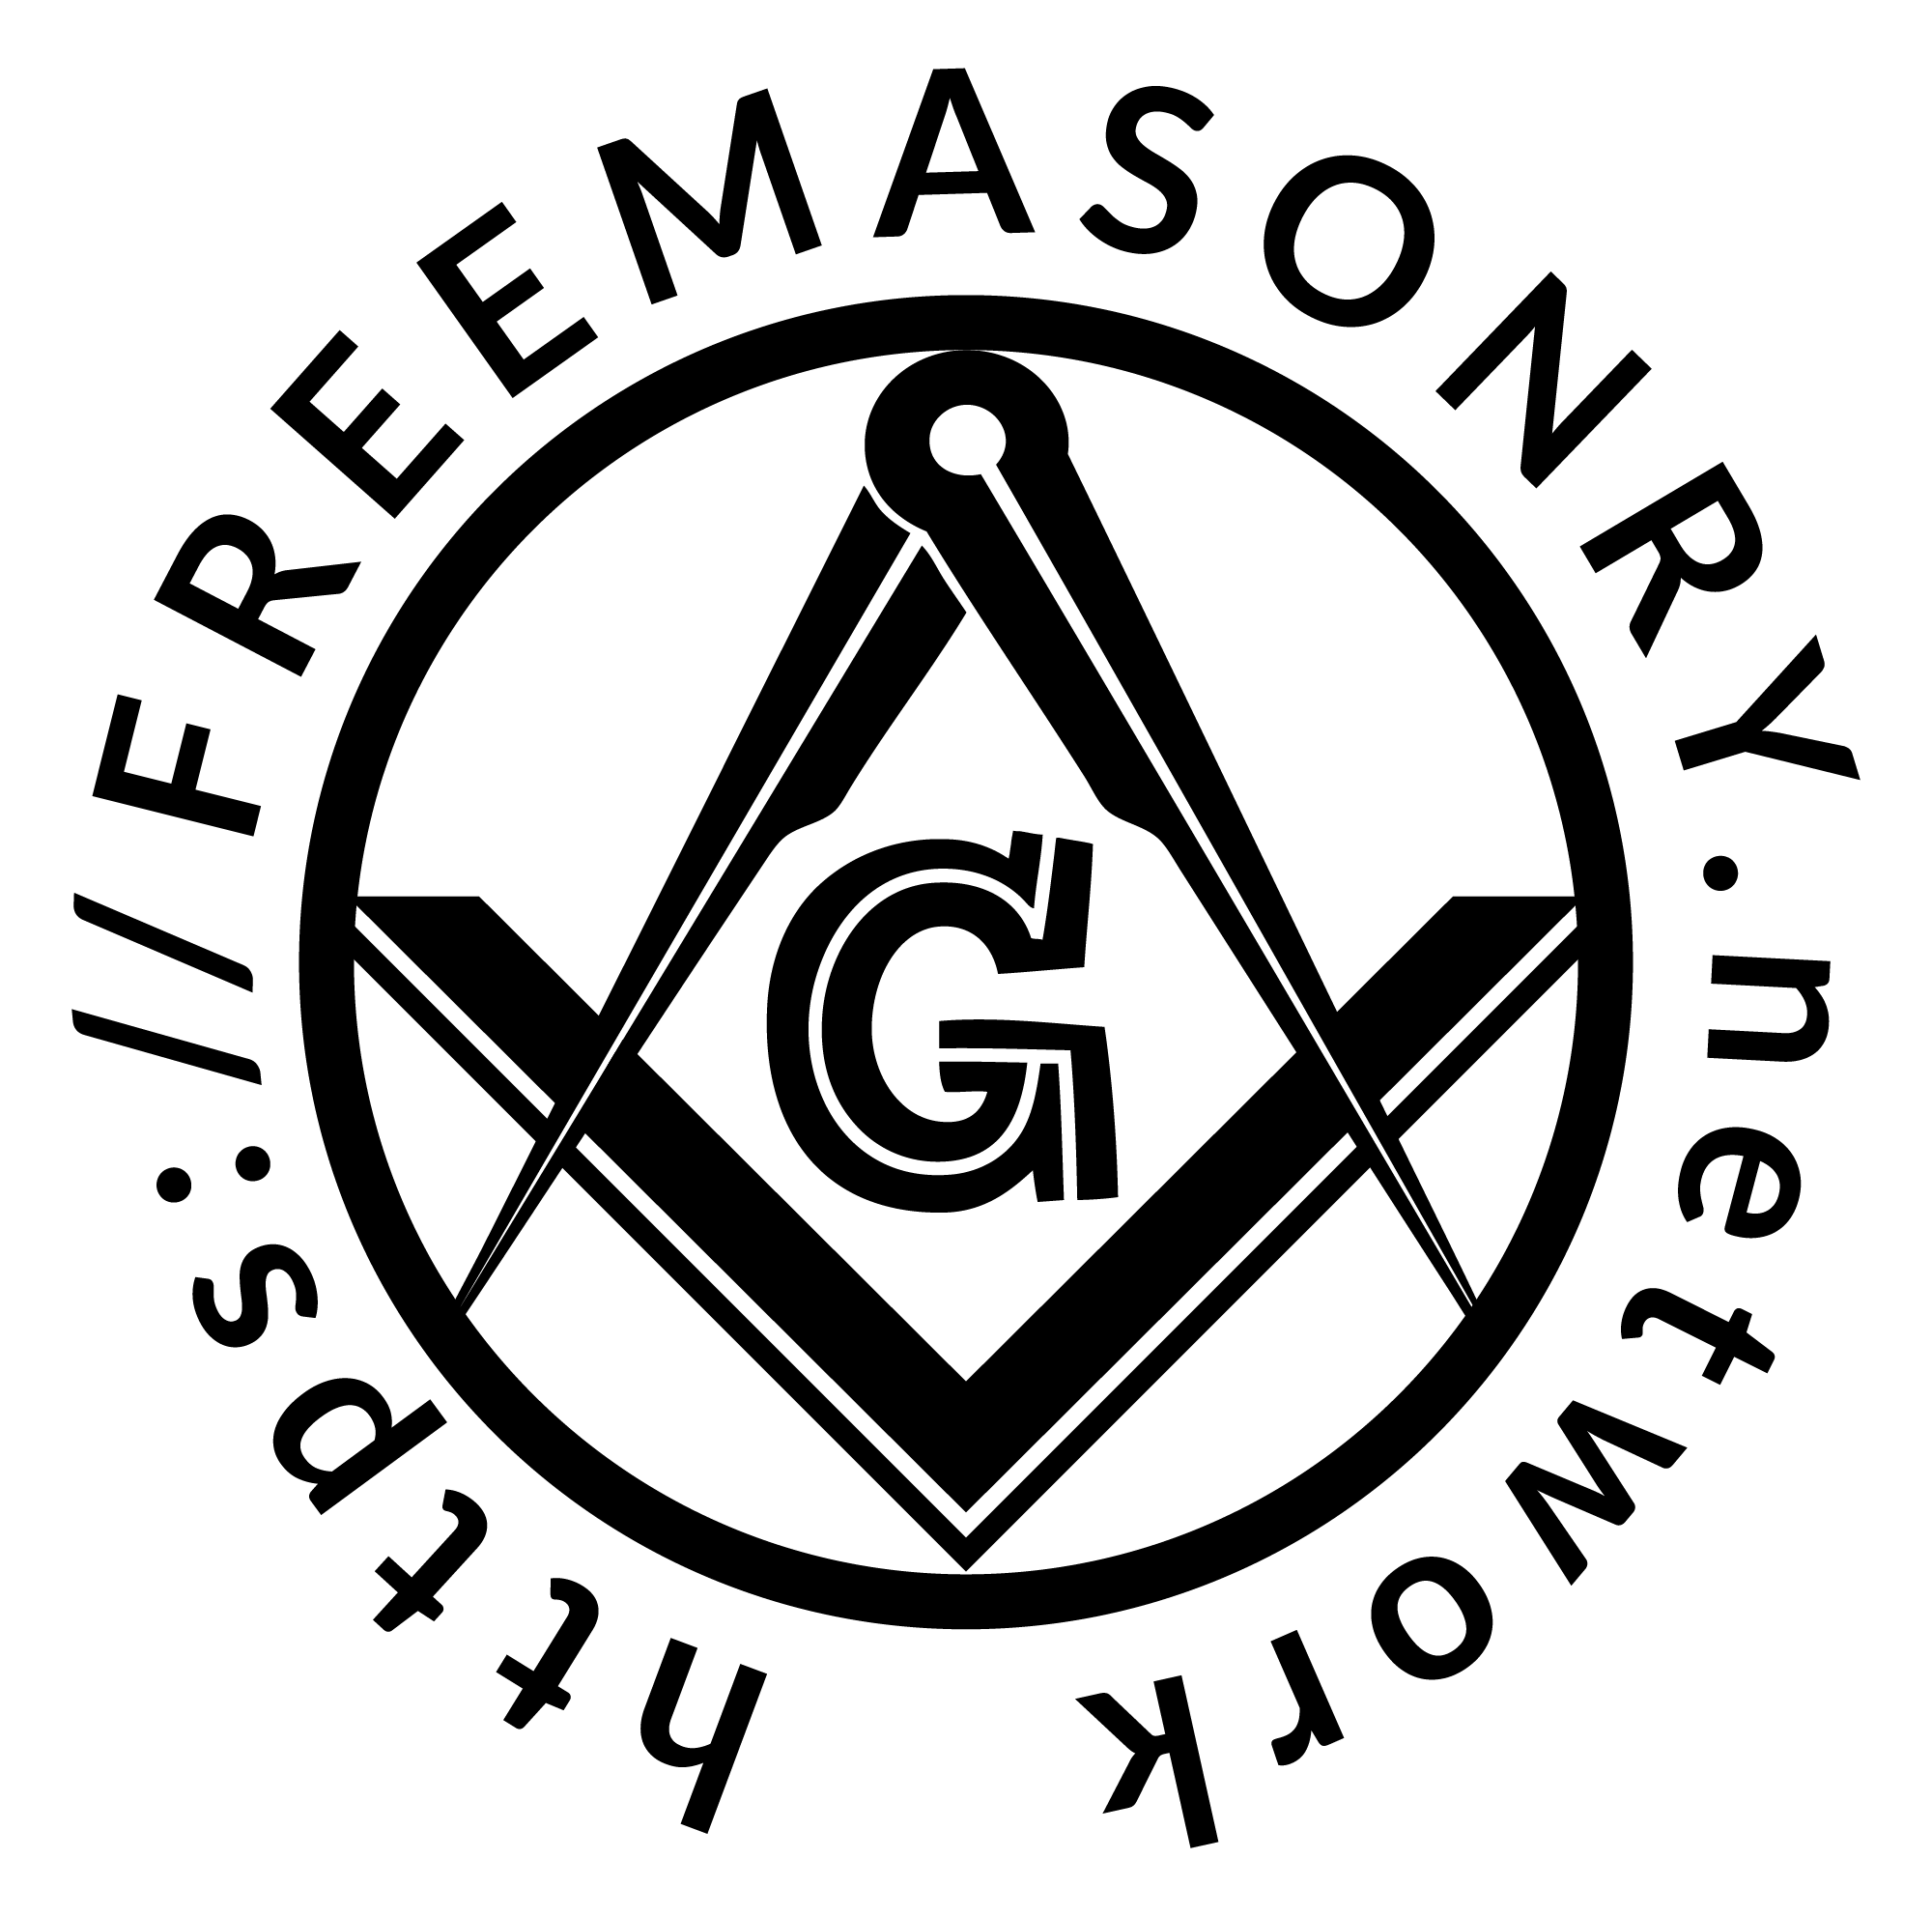 HISTORICAL AND LEGENDARY ORIGINS OF FREEMASONRY